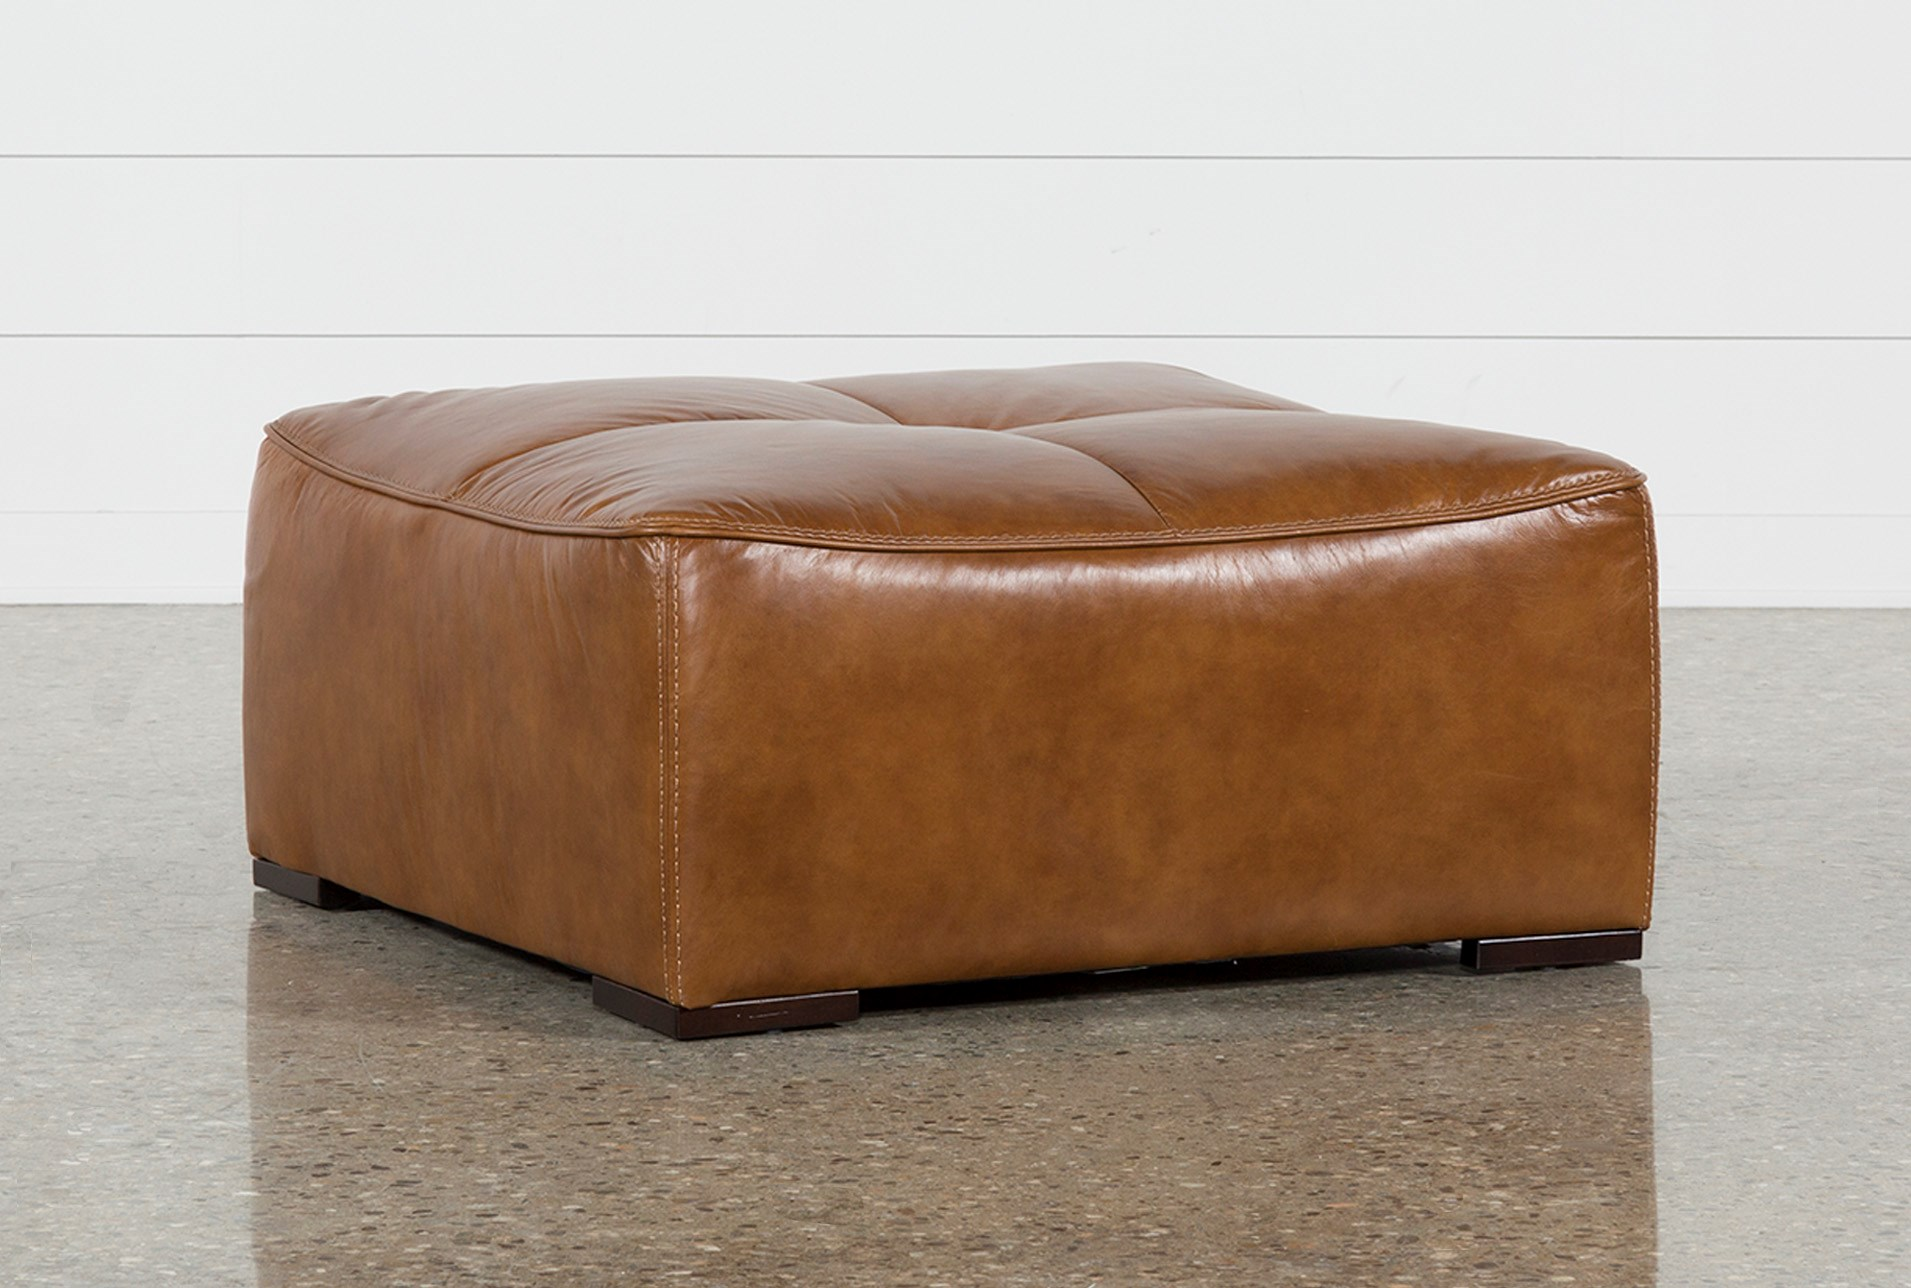 Tremendous Burton Leather Cocktail Ottoman Beatyapartments Chair Design Images Beatyapartmentscom